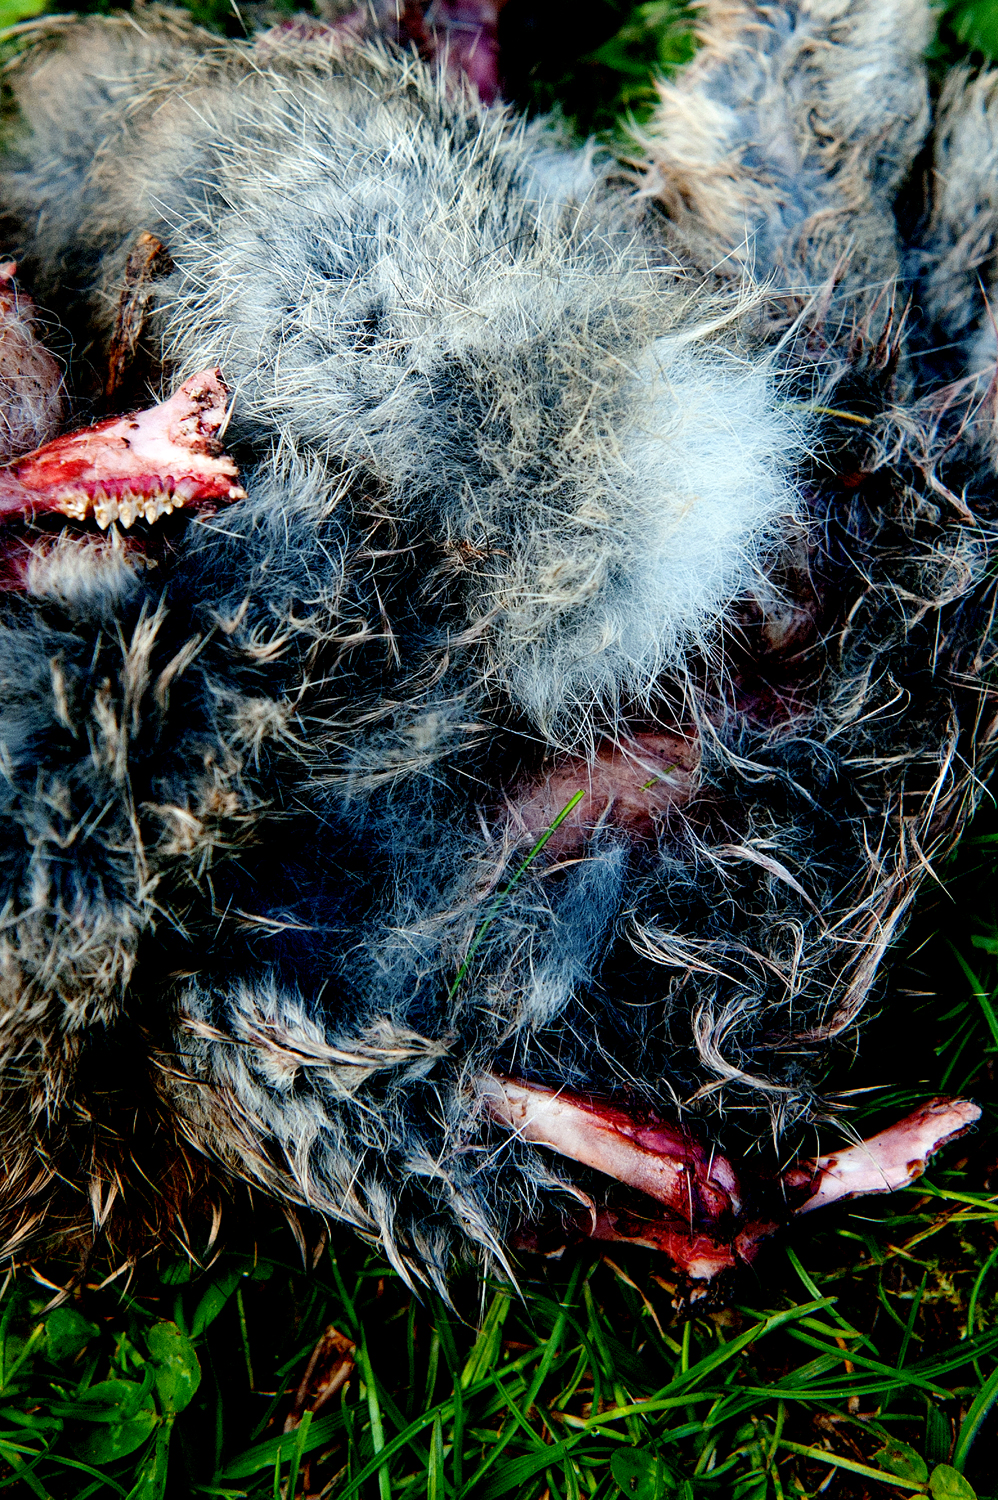 fur from flesh